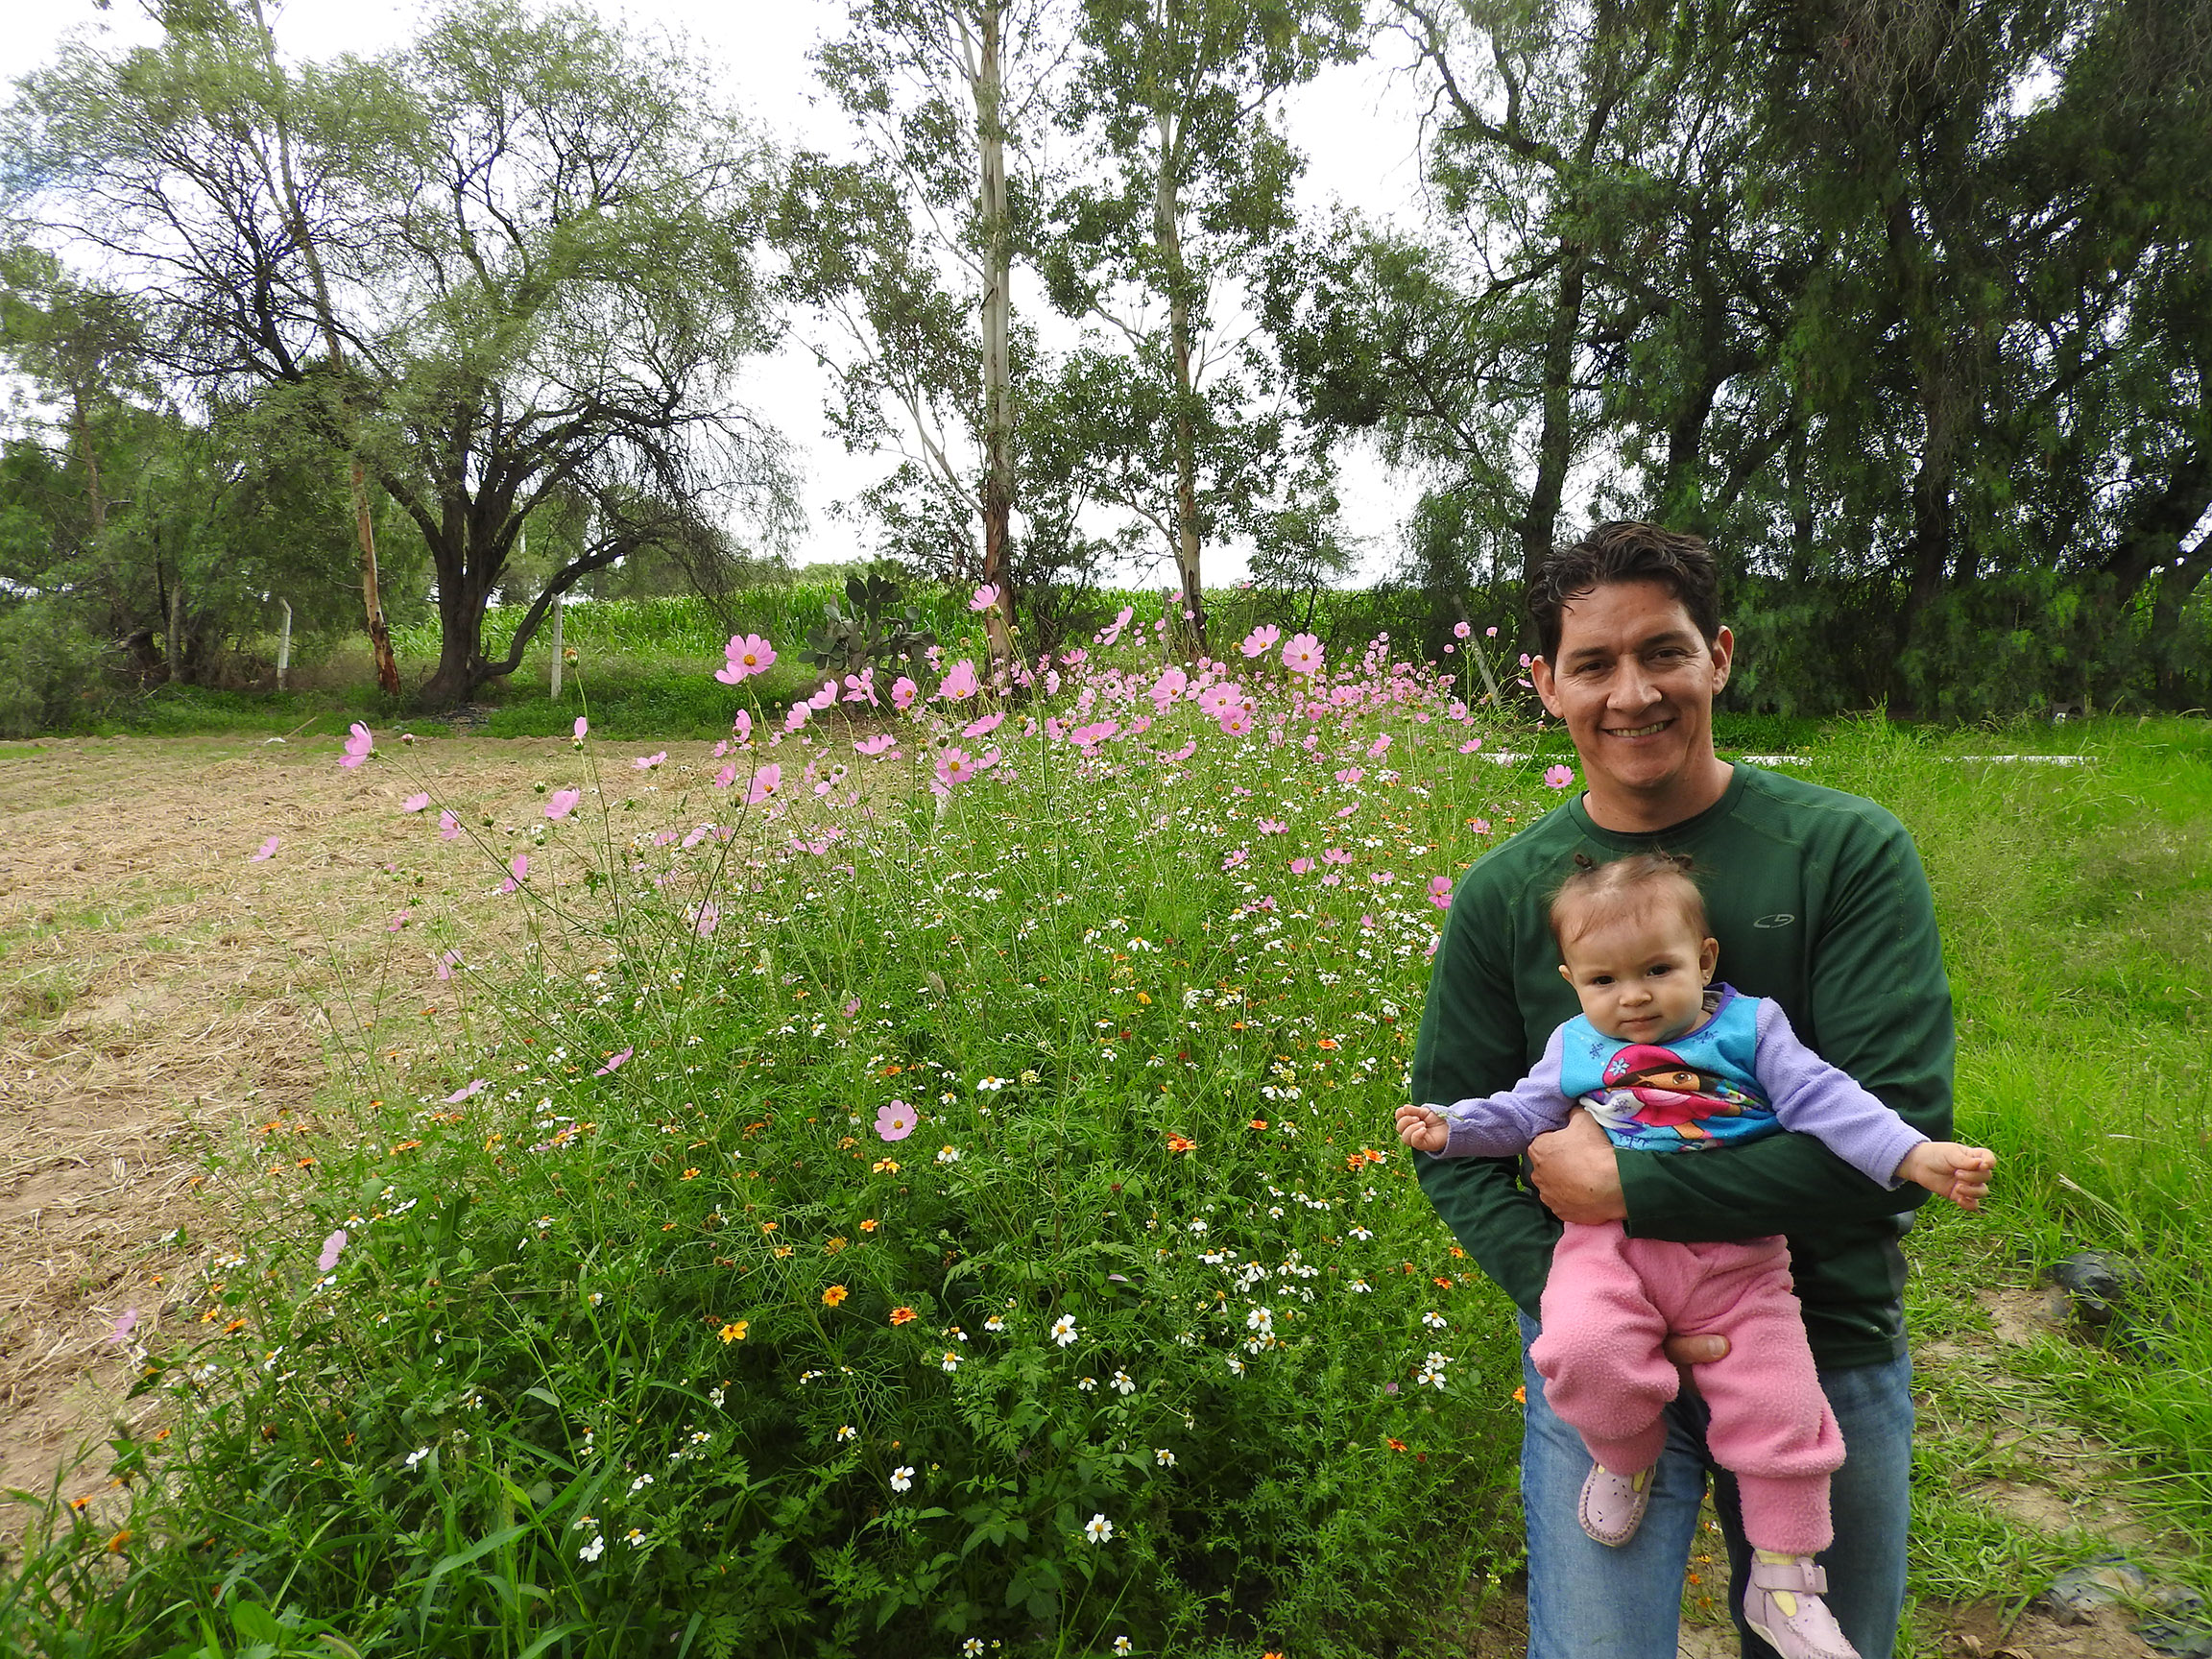 The author, Héctor Ávila Villegas, stands beside a pollinator habitat strip full of pink, white, and yellow flowers